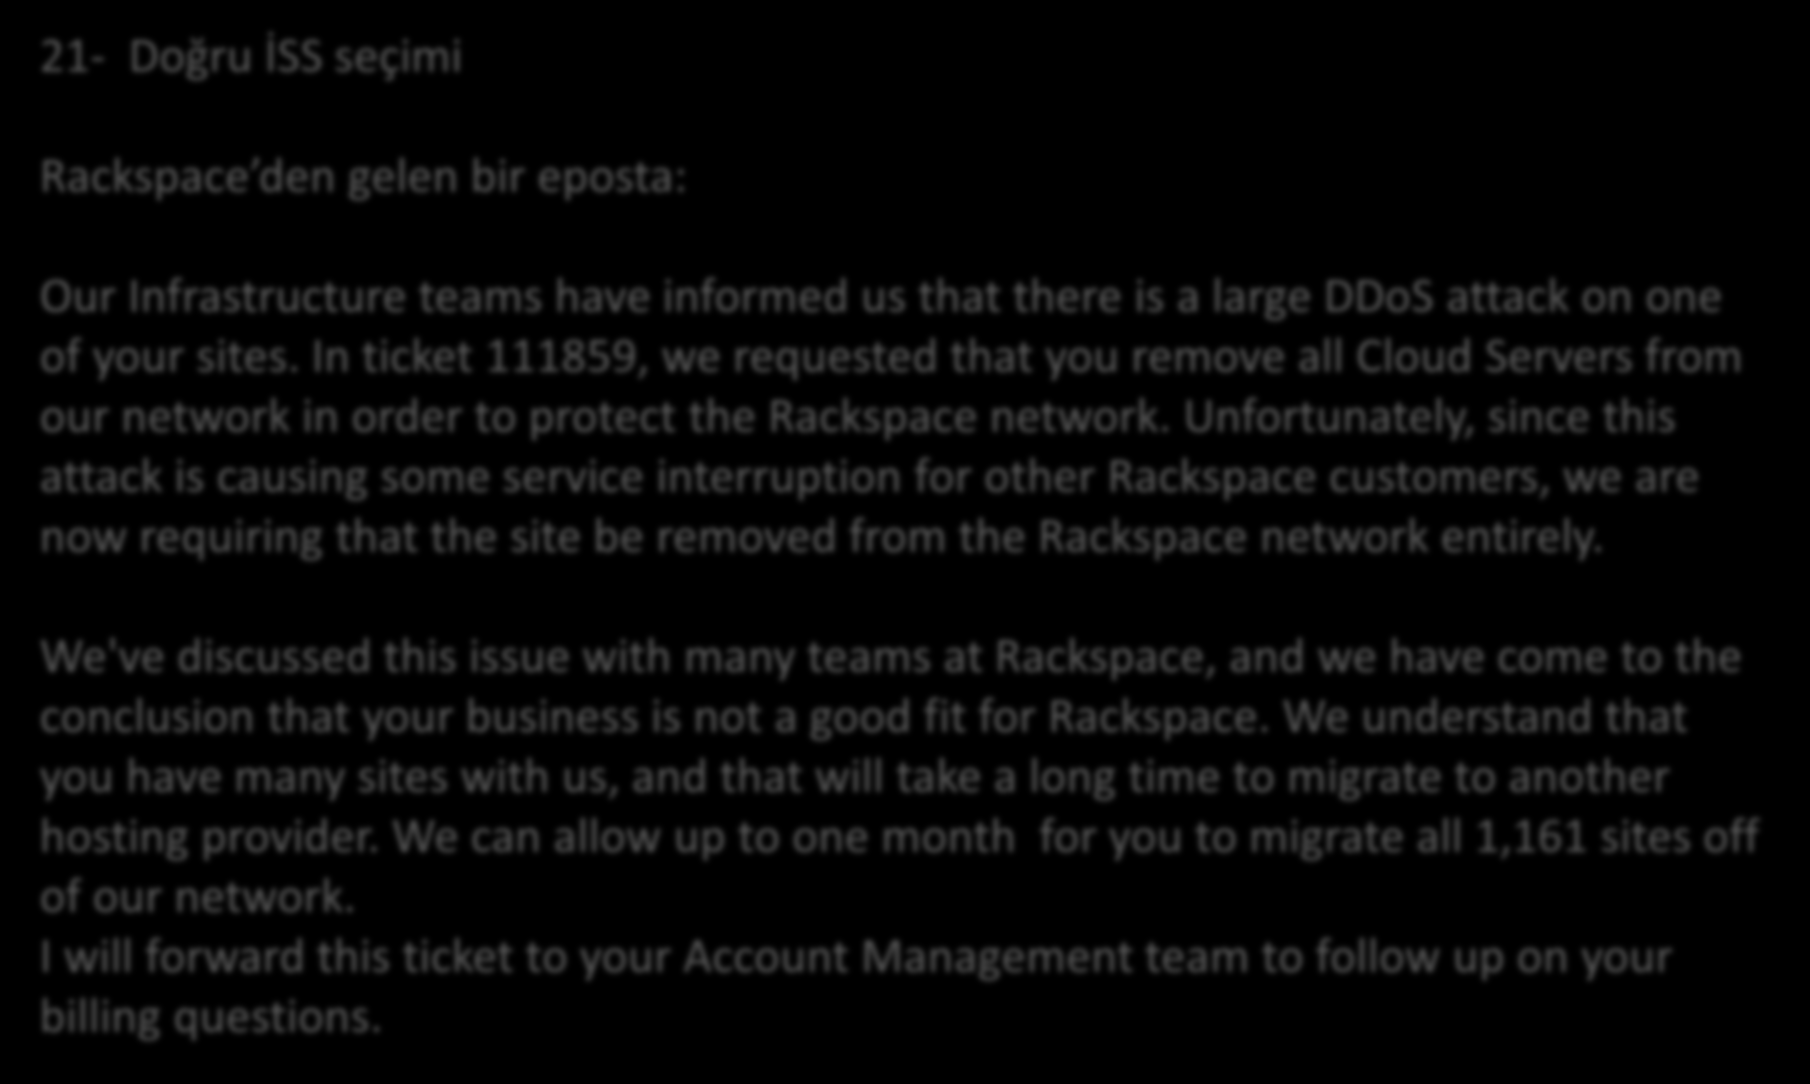 Yöntemler 21- Doğru İSS seçimi Rackspace den gelen bir eposta: Our Infrastructure teams have informed us that there is a large DDoS attack on one of your sites.